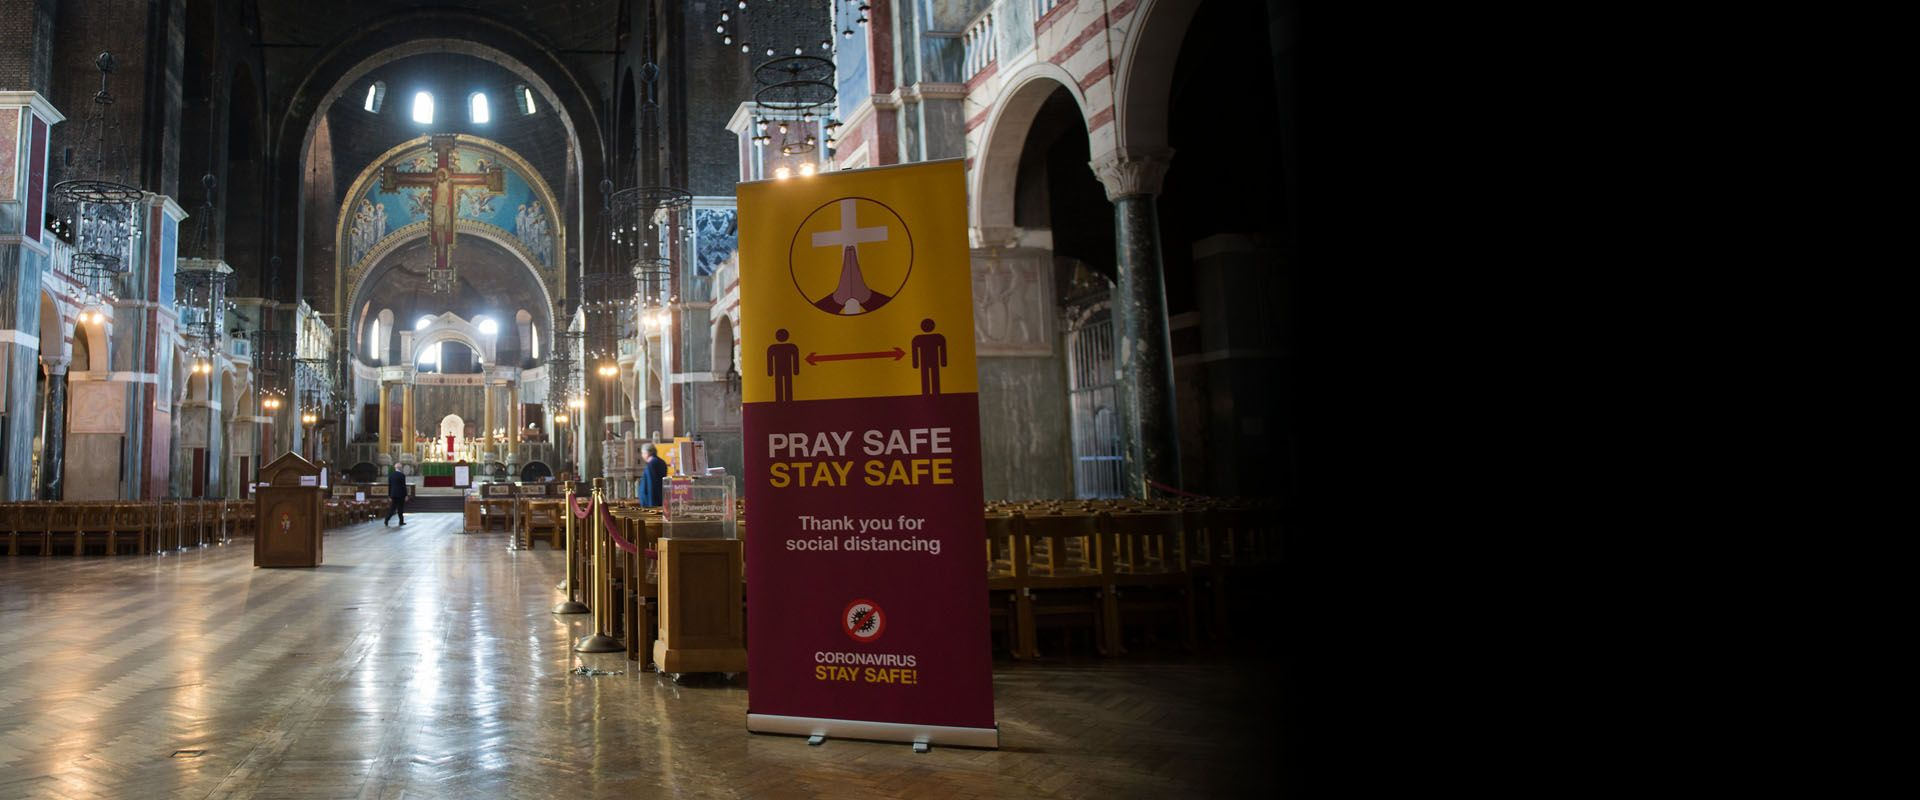 A 'Pray safe, Stay Safe' banner in a Catholic church.